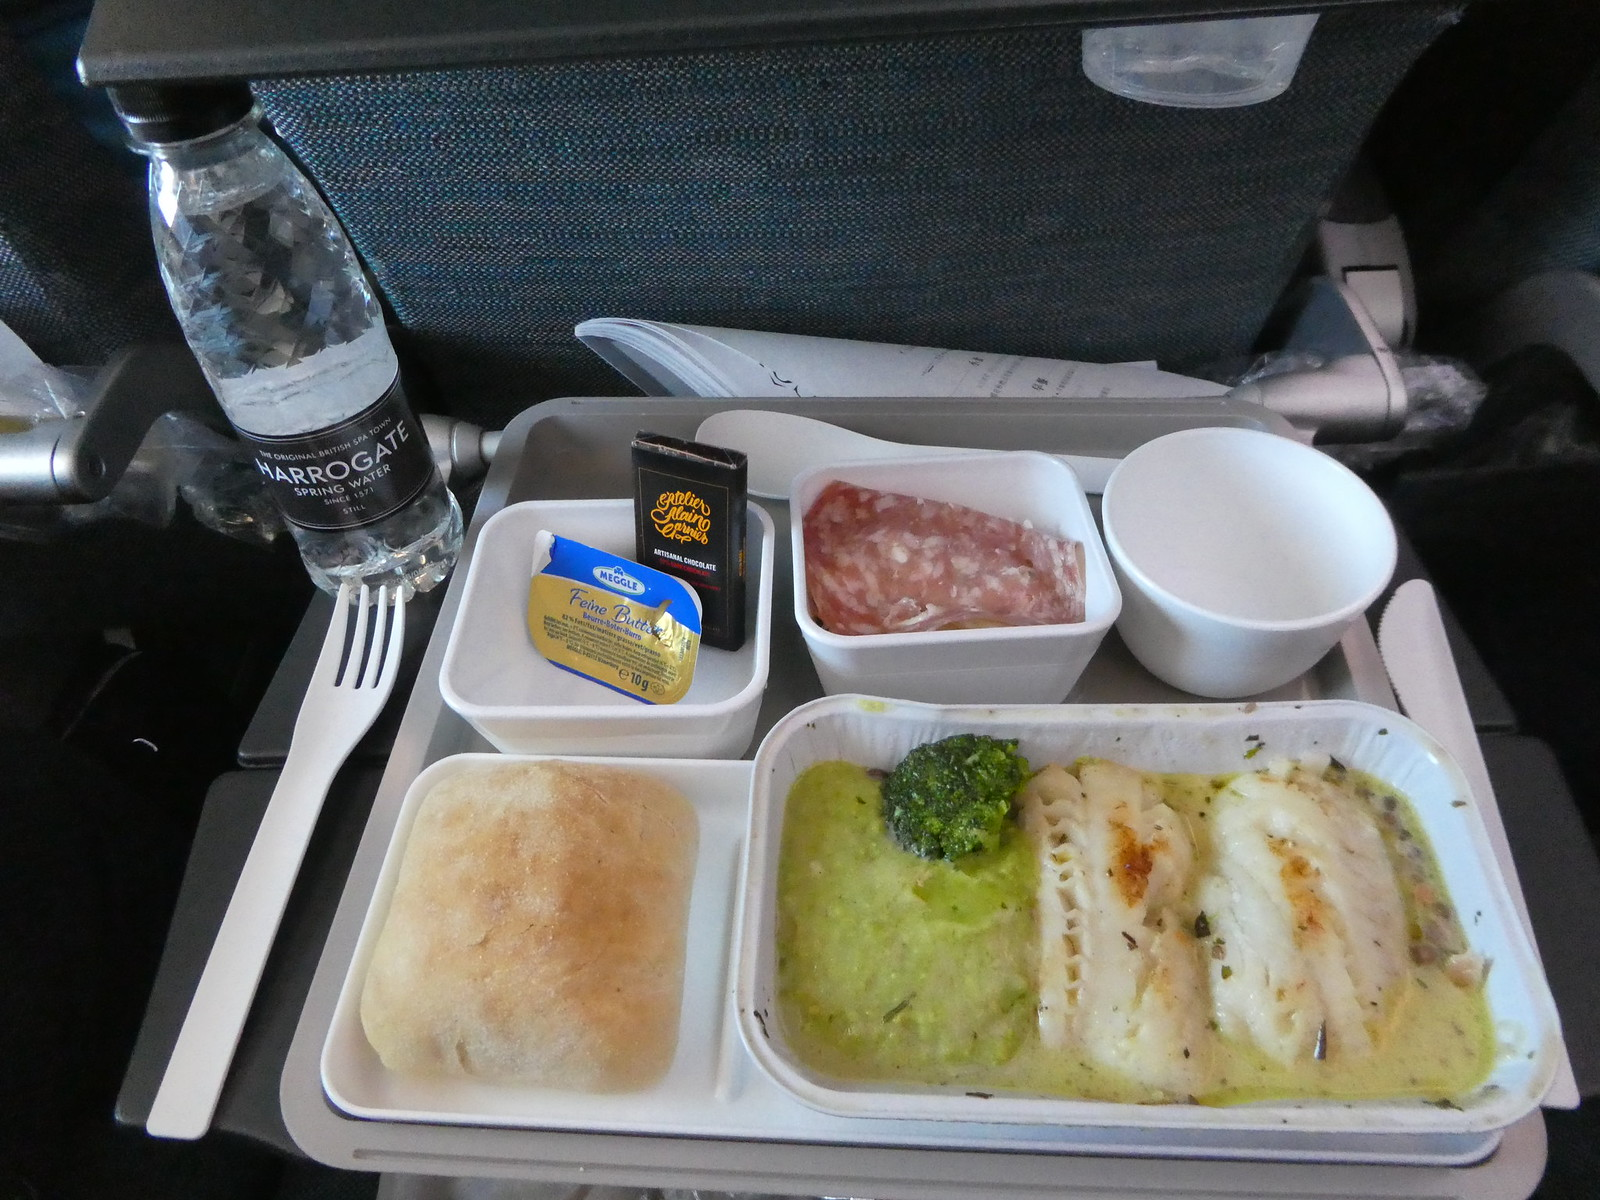 Lunch served on board our Cathay Pacific flight from Manchester to Hong Kong